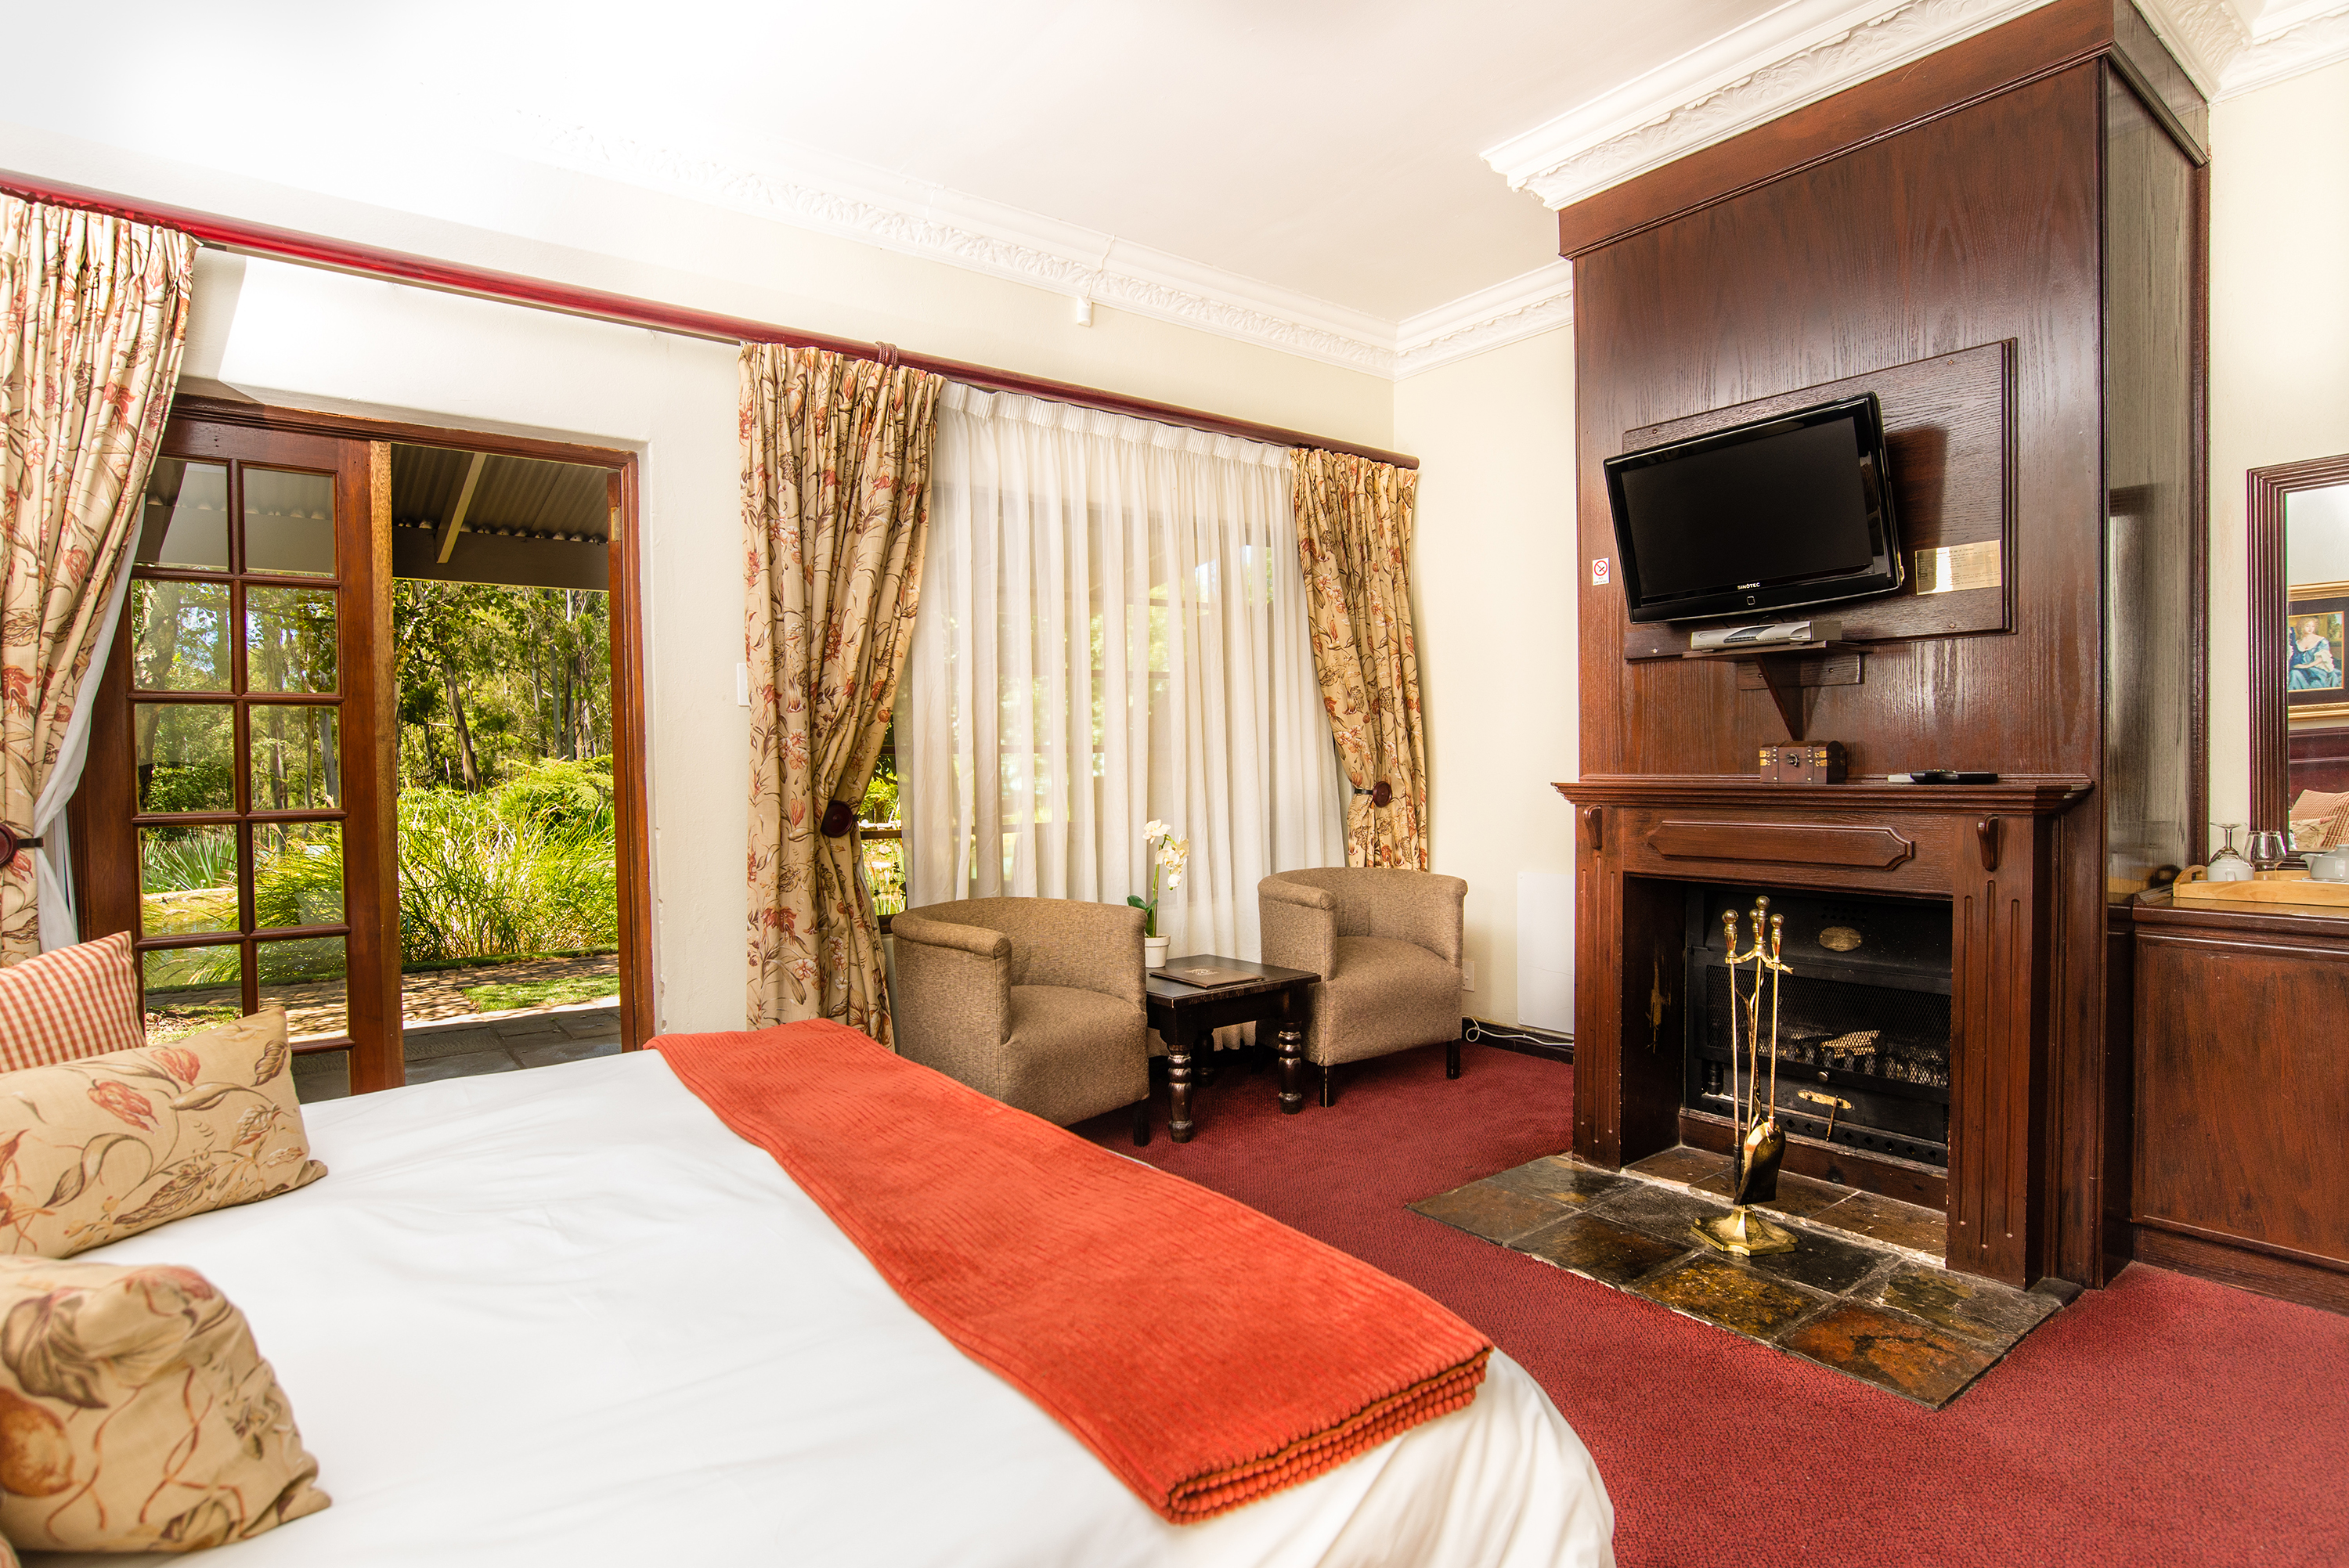 Country Lodge Suites: Cuddle up in front of the fire place during cold evenings